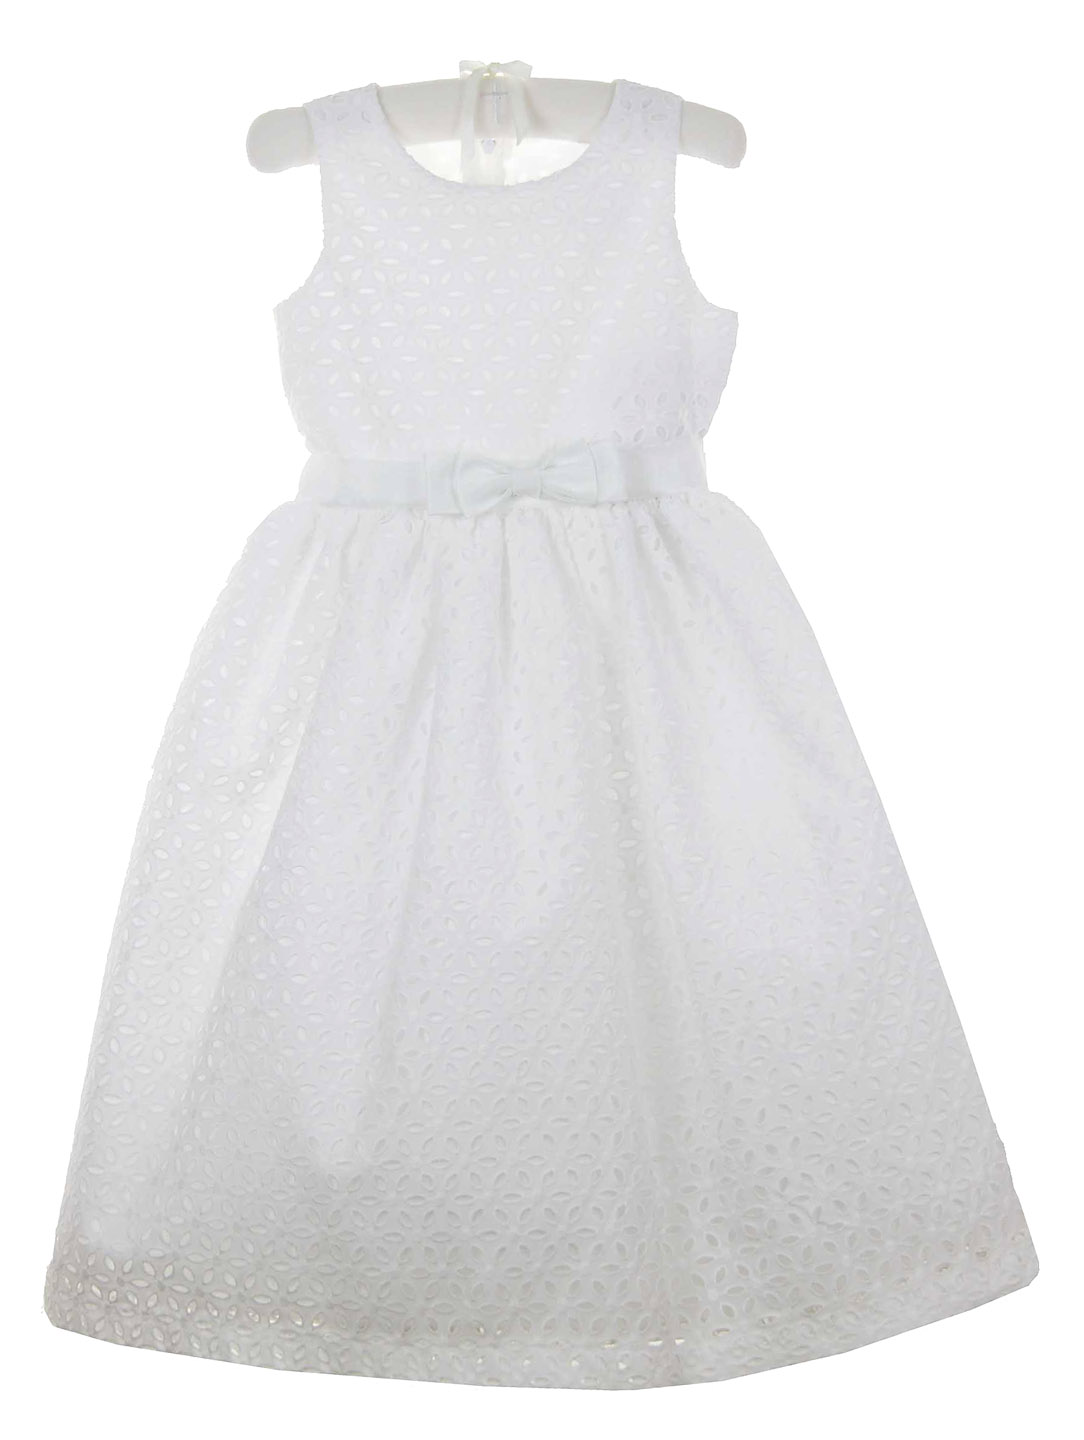 Swea pea and lilli white cotton eyelet dresselegant white cotton click to enlarge mightylinksfo